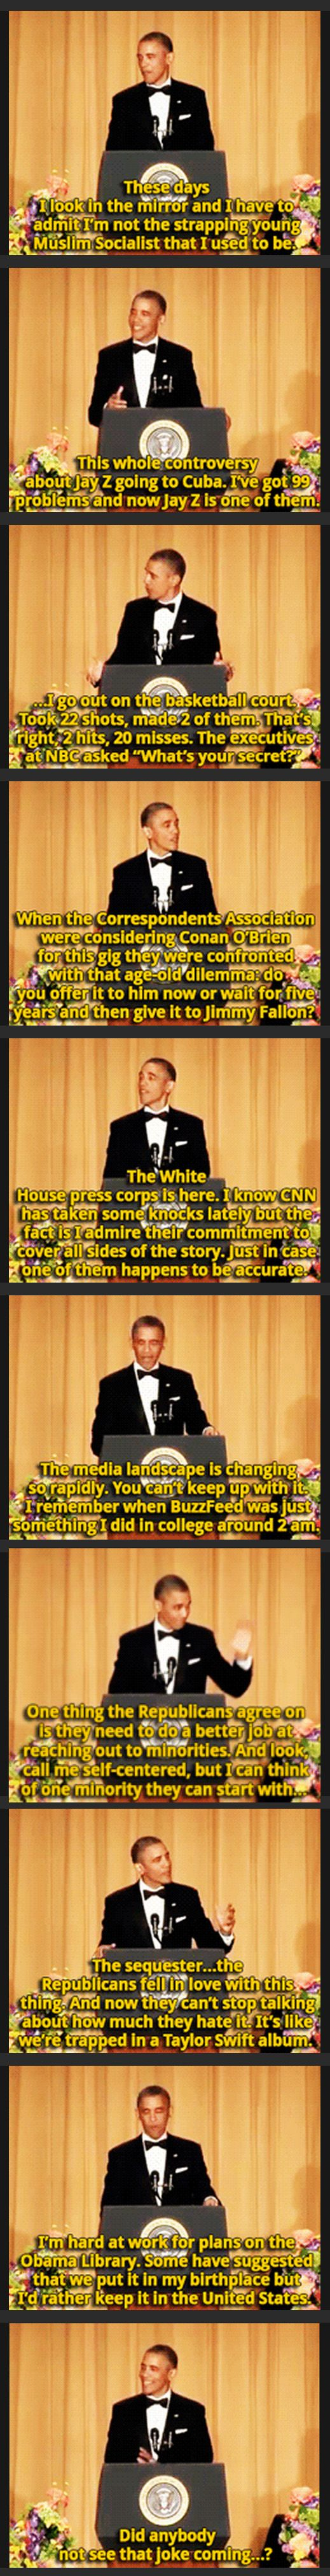 Obamas one liners at White House Correspondents Dinner